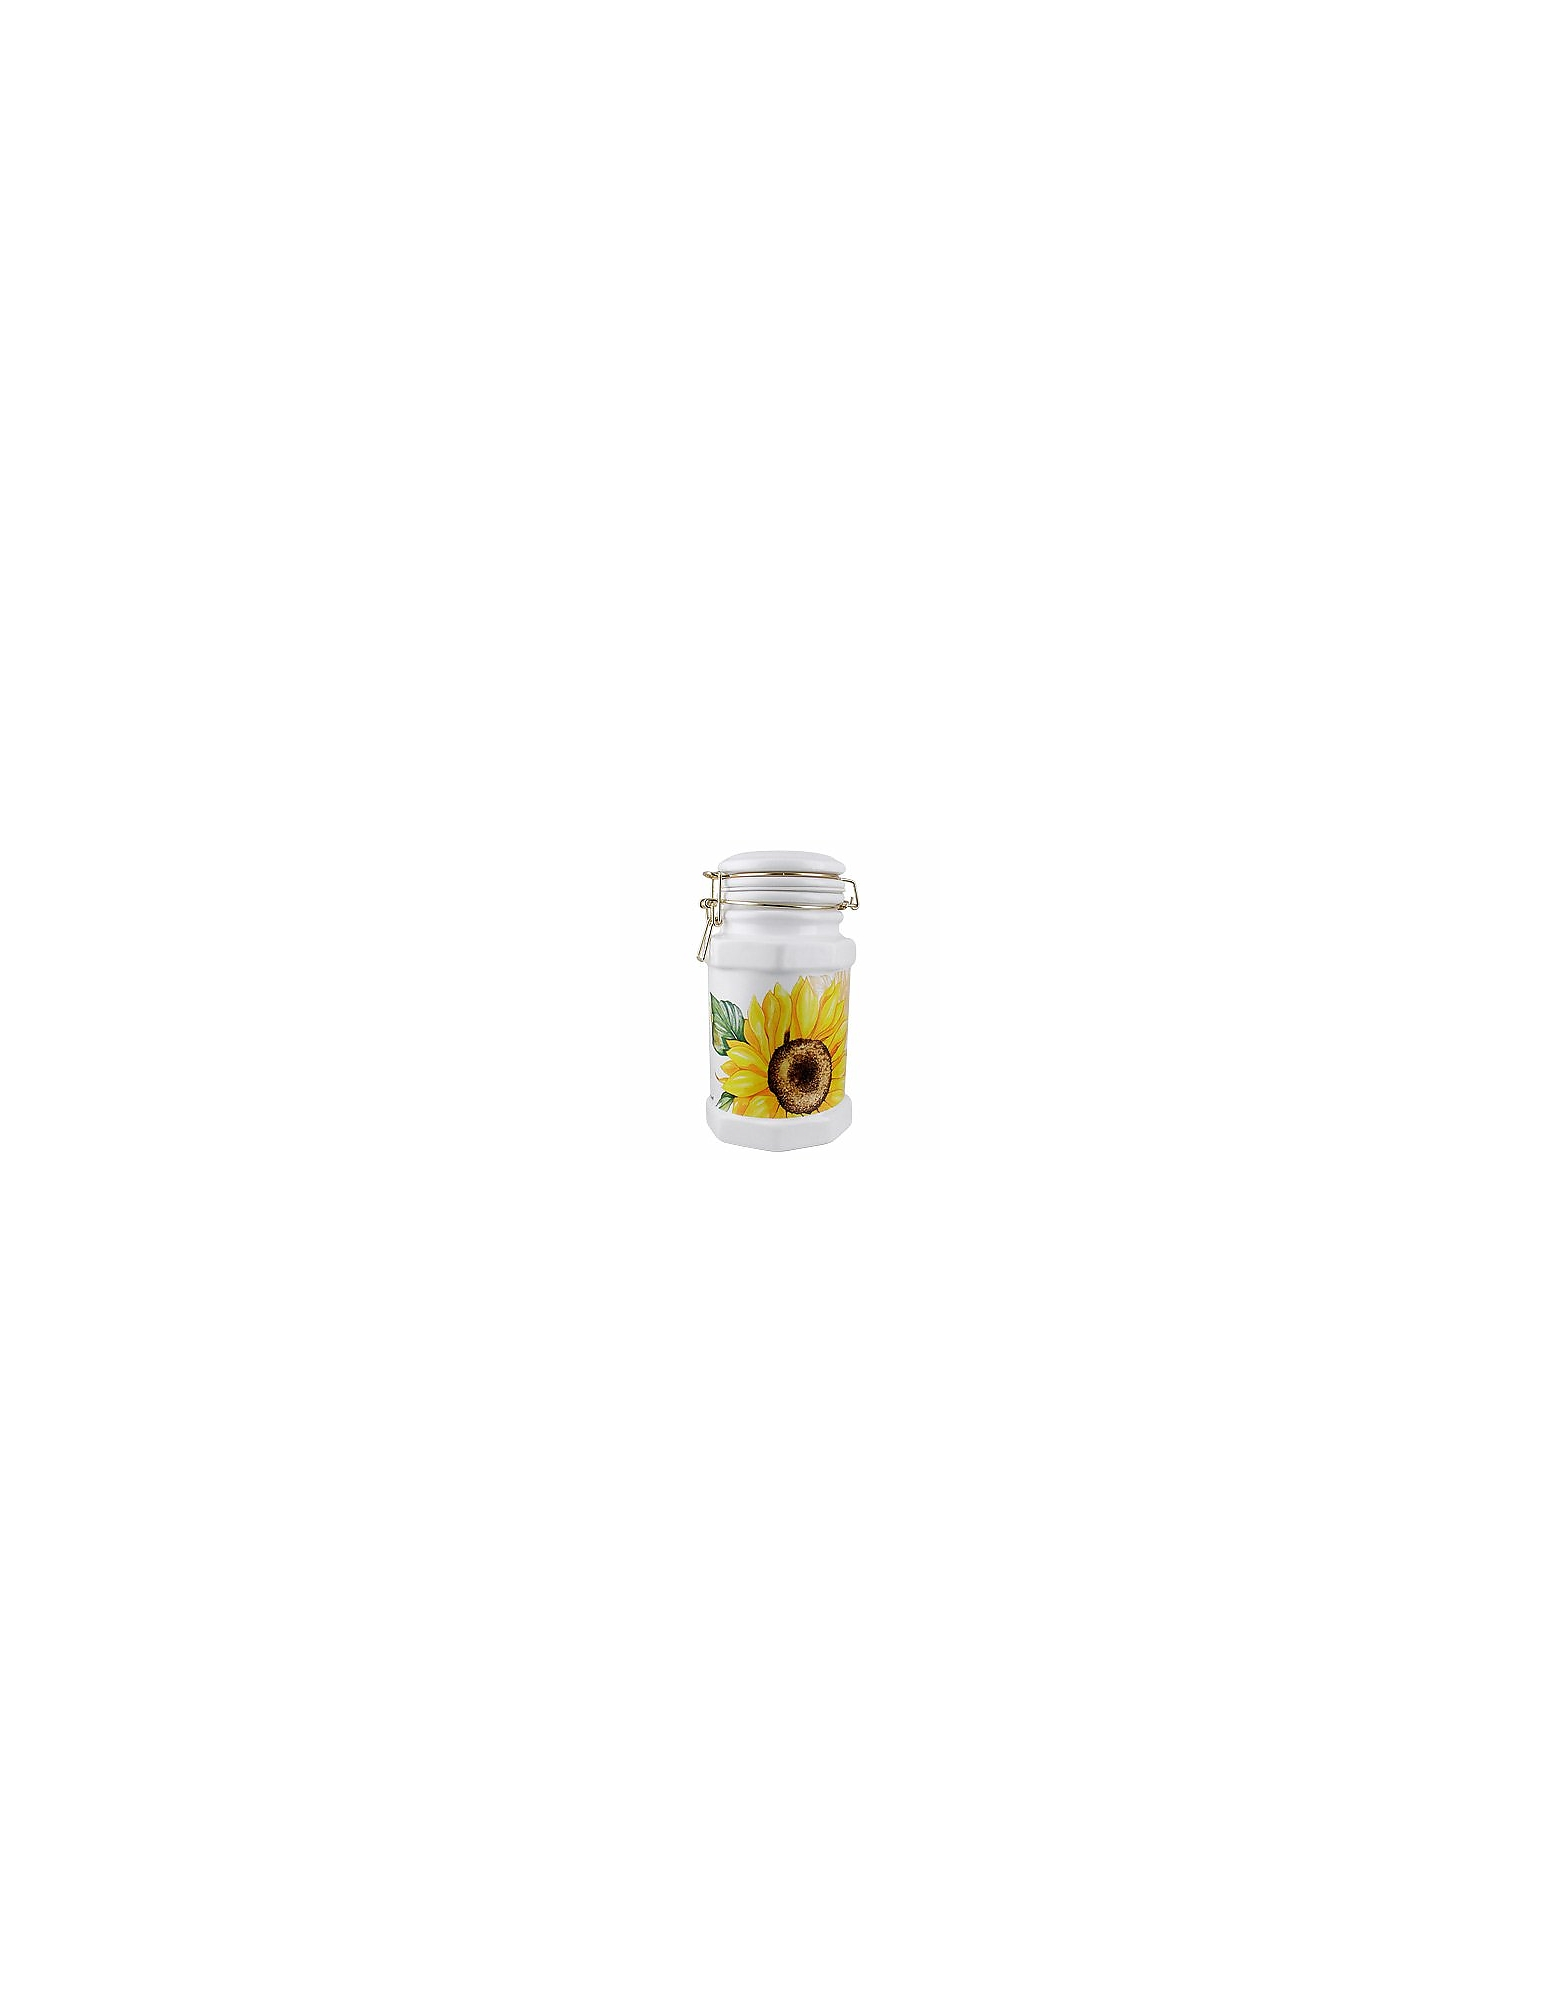 Spigarelli Kitchen & Dining, Sunflower Airtight Seal Ceramic Canister